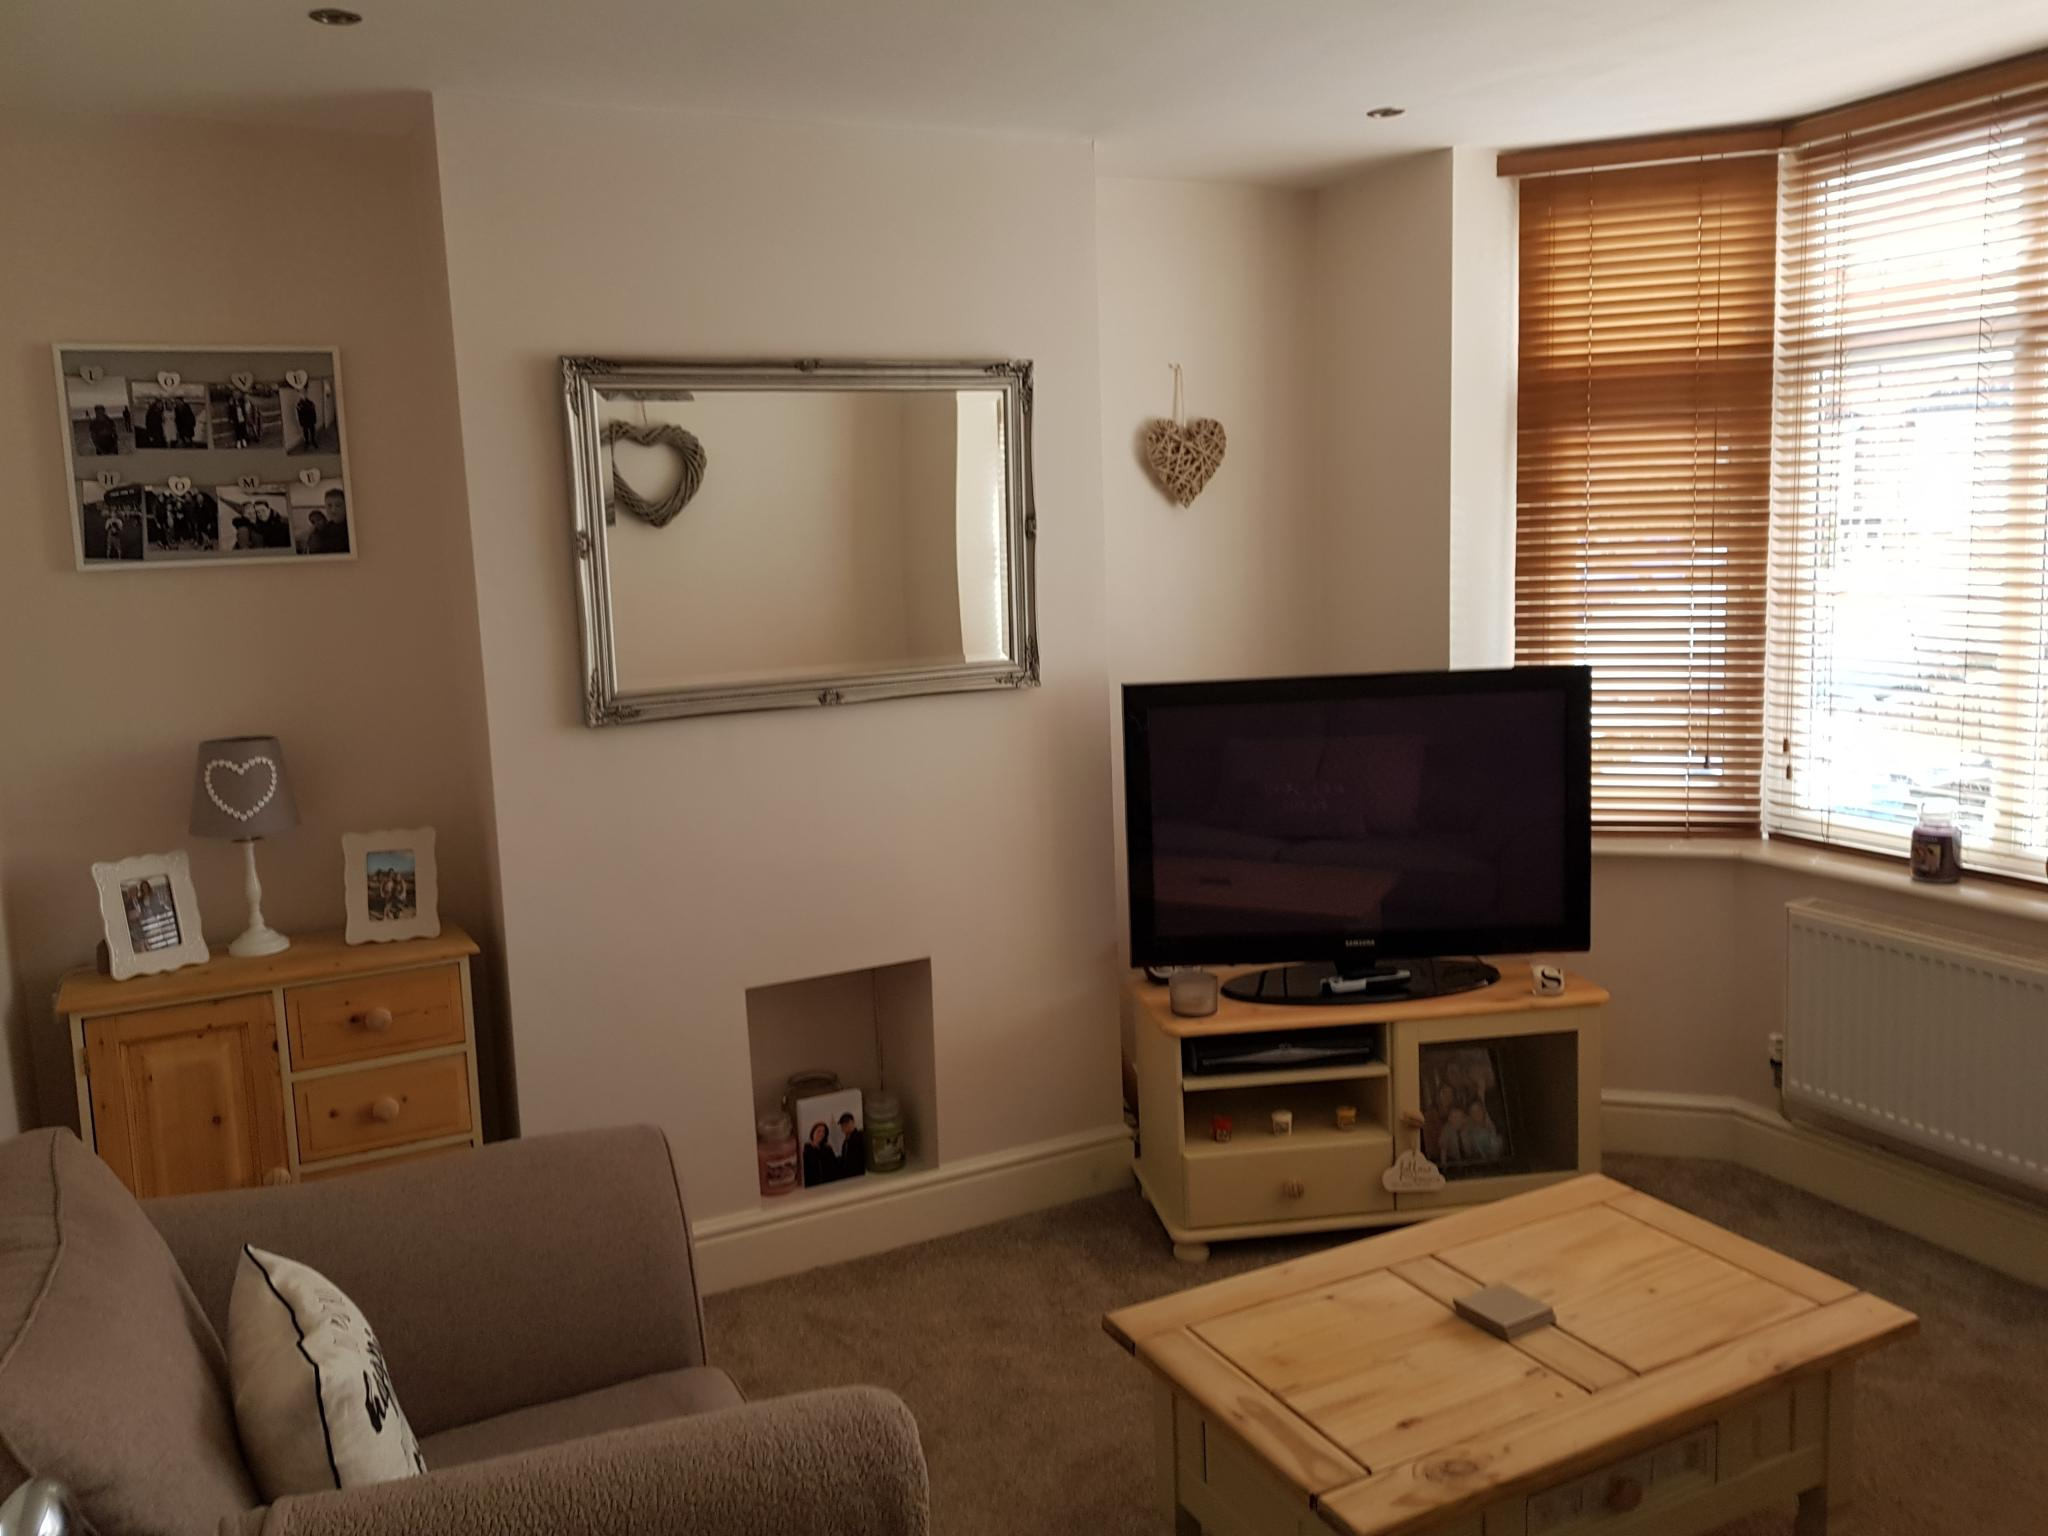 3 bedroom mid terraced house SSTC in Ipswich - 3